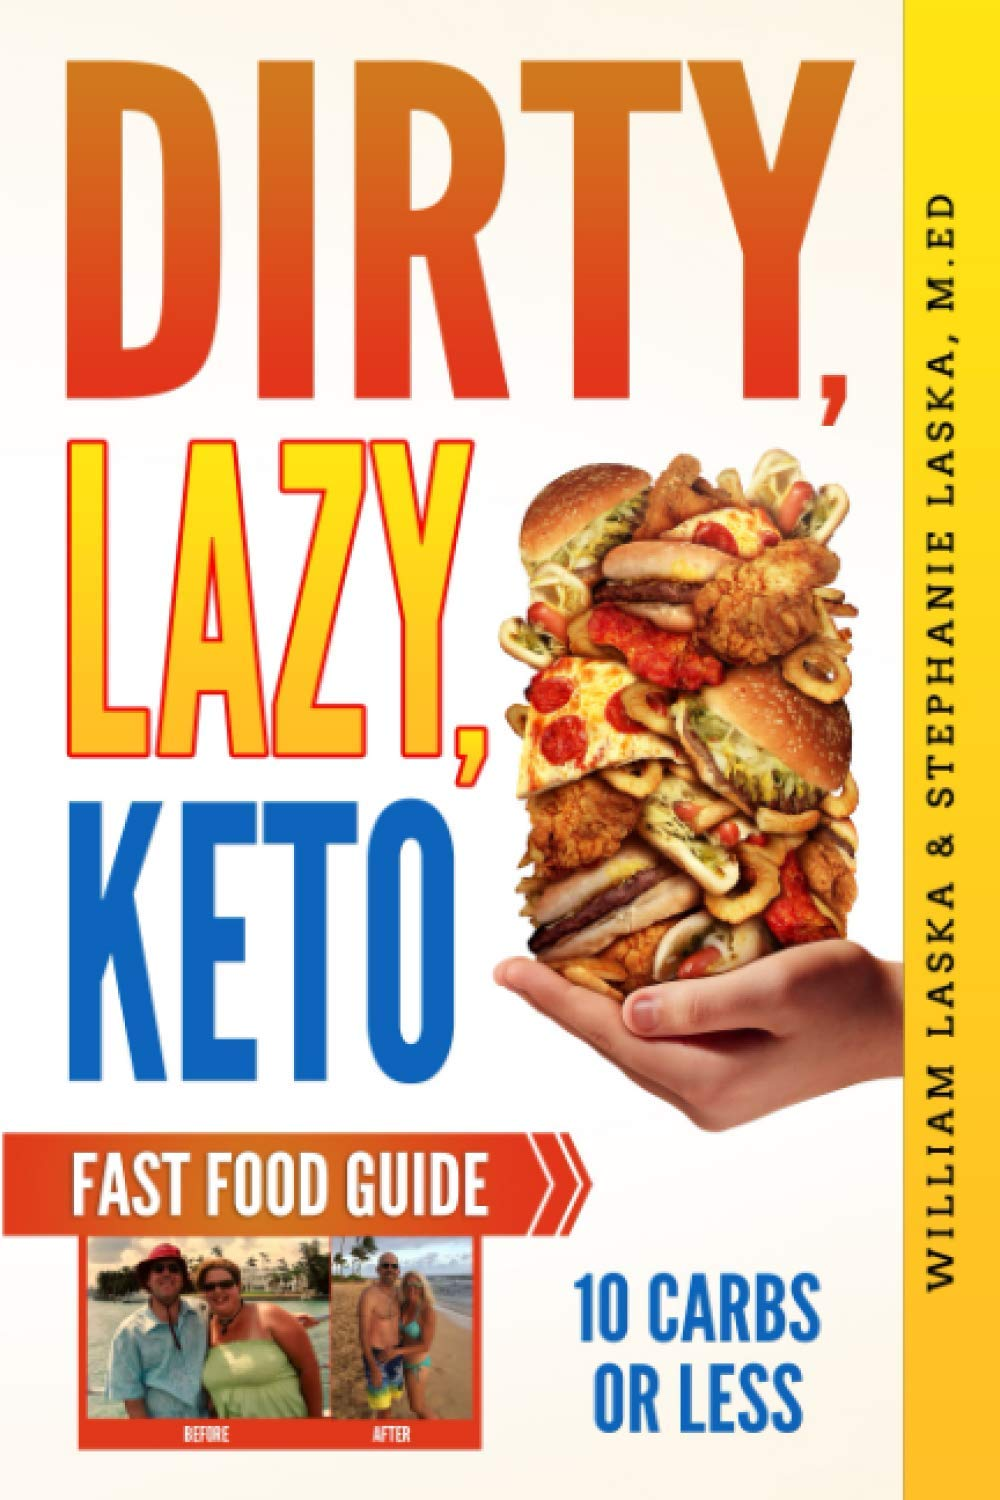 Dirty Lazy Keto Fast Food Guide 10 Carbs Or Less Ketogenic Diet Low Carb Choices For Beginners Wanting Weight Loss Without Owning An Instant Pot Or Keto Cookbook Laska William Laska